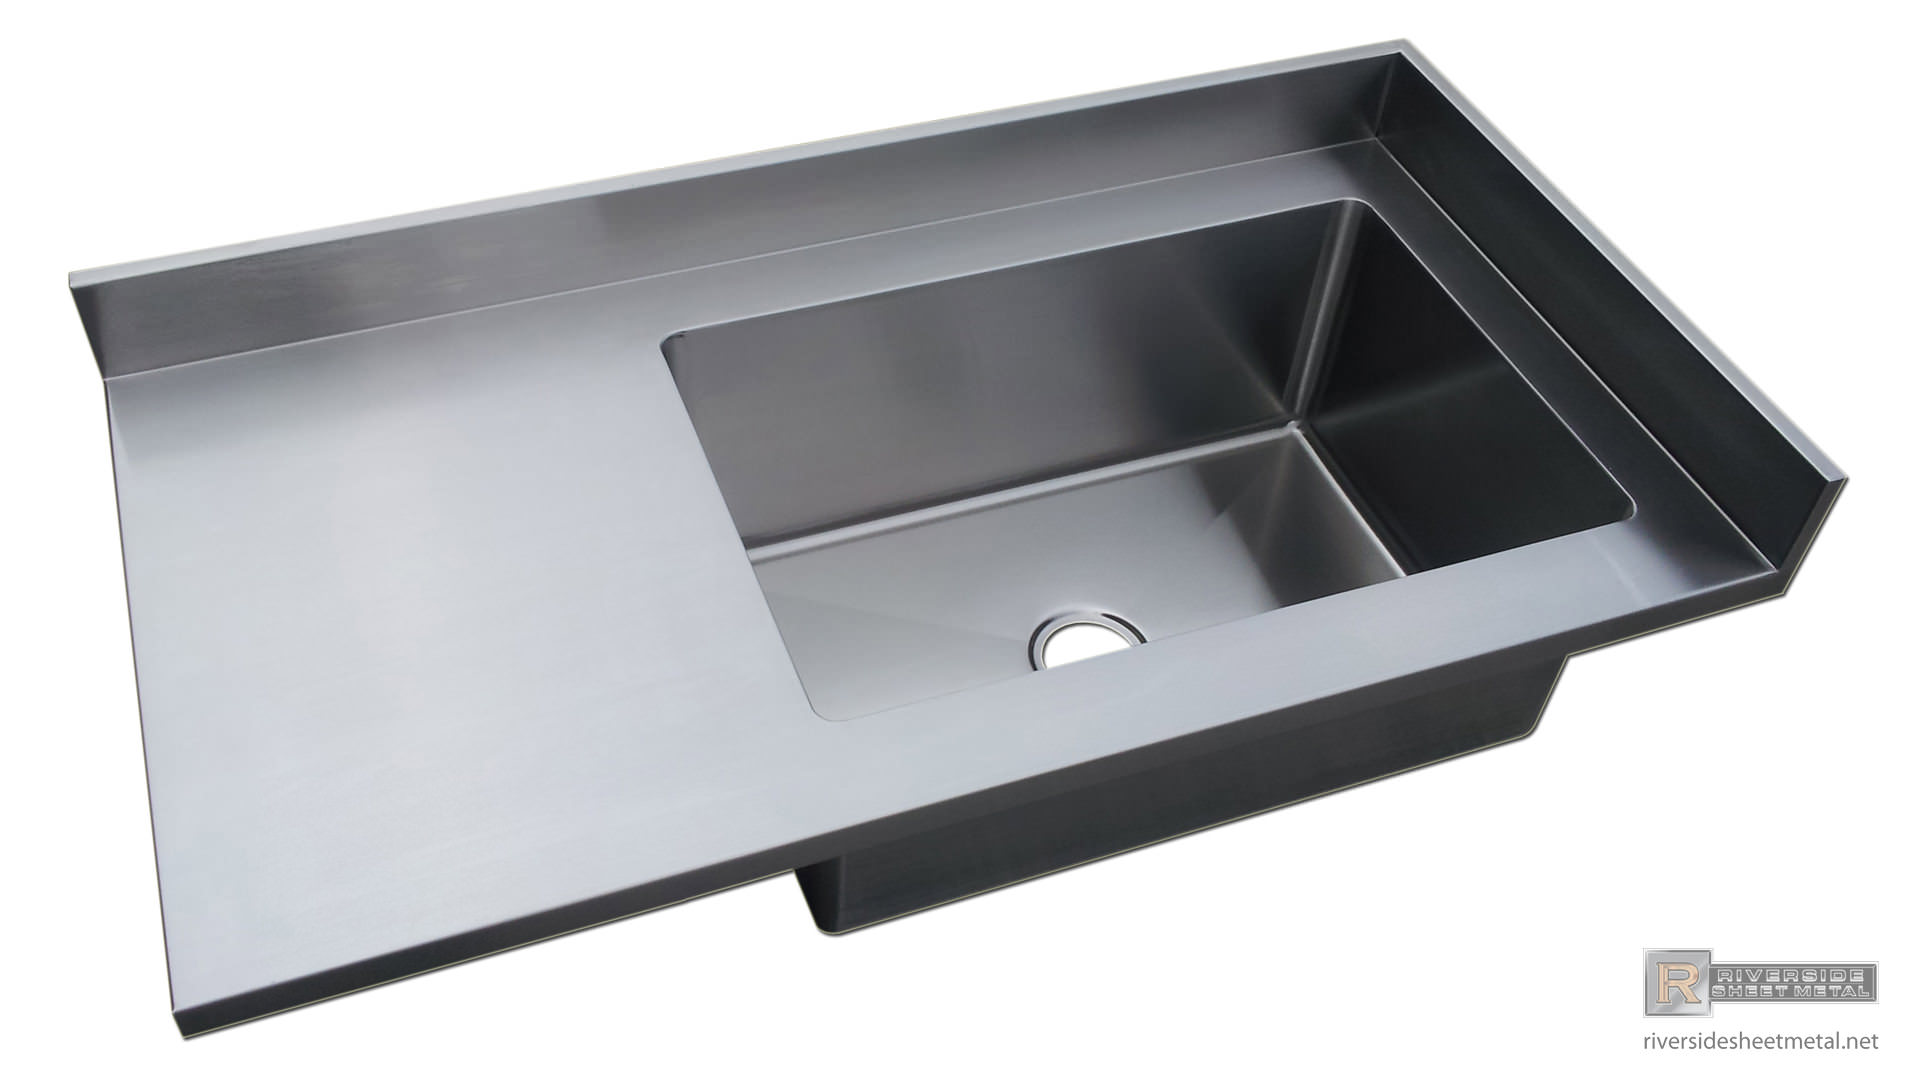 Stainless Steel Sink With Counter : Stainless steel number 4 finish counter top with integrated sink and ...